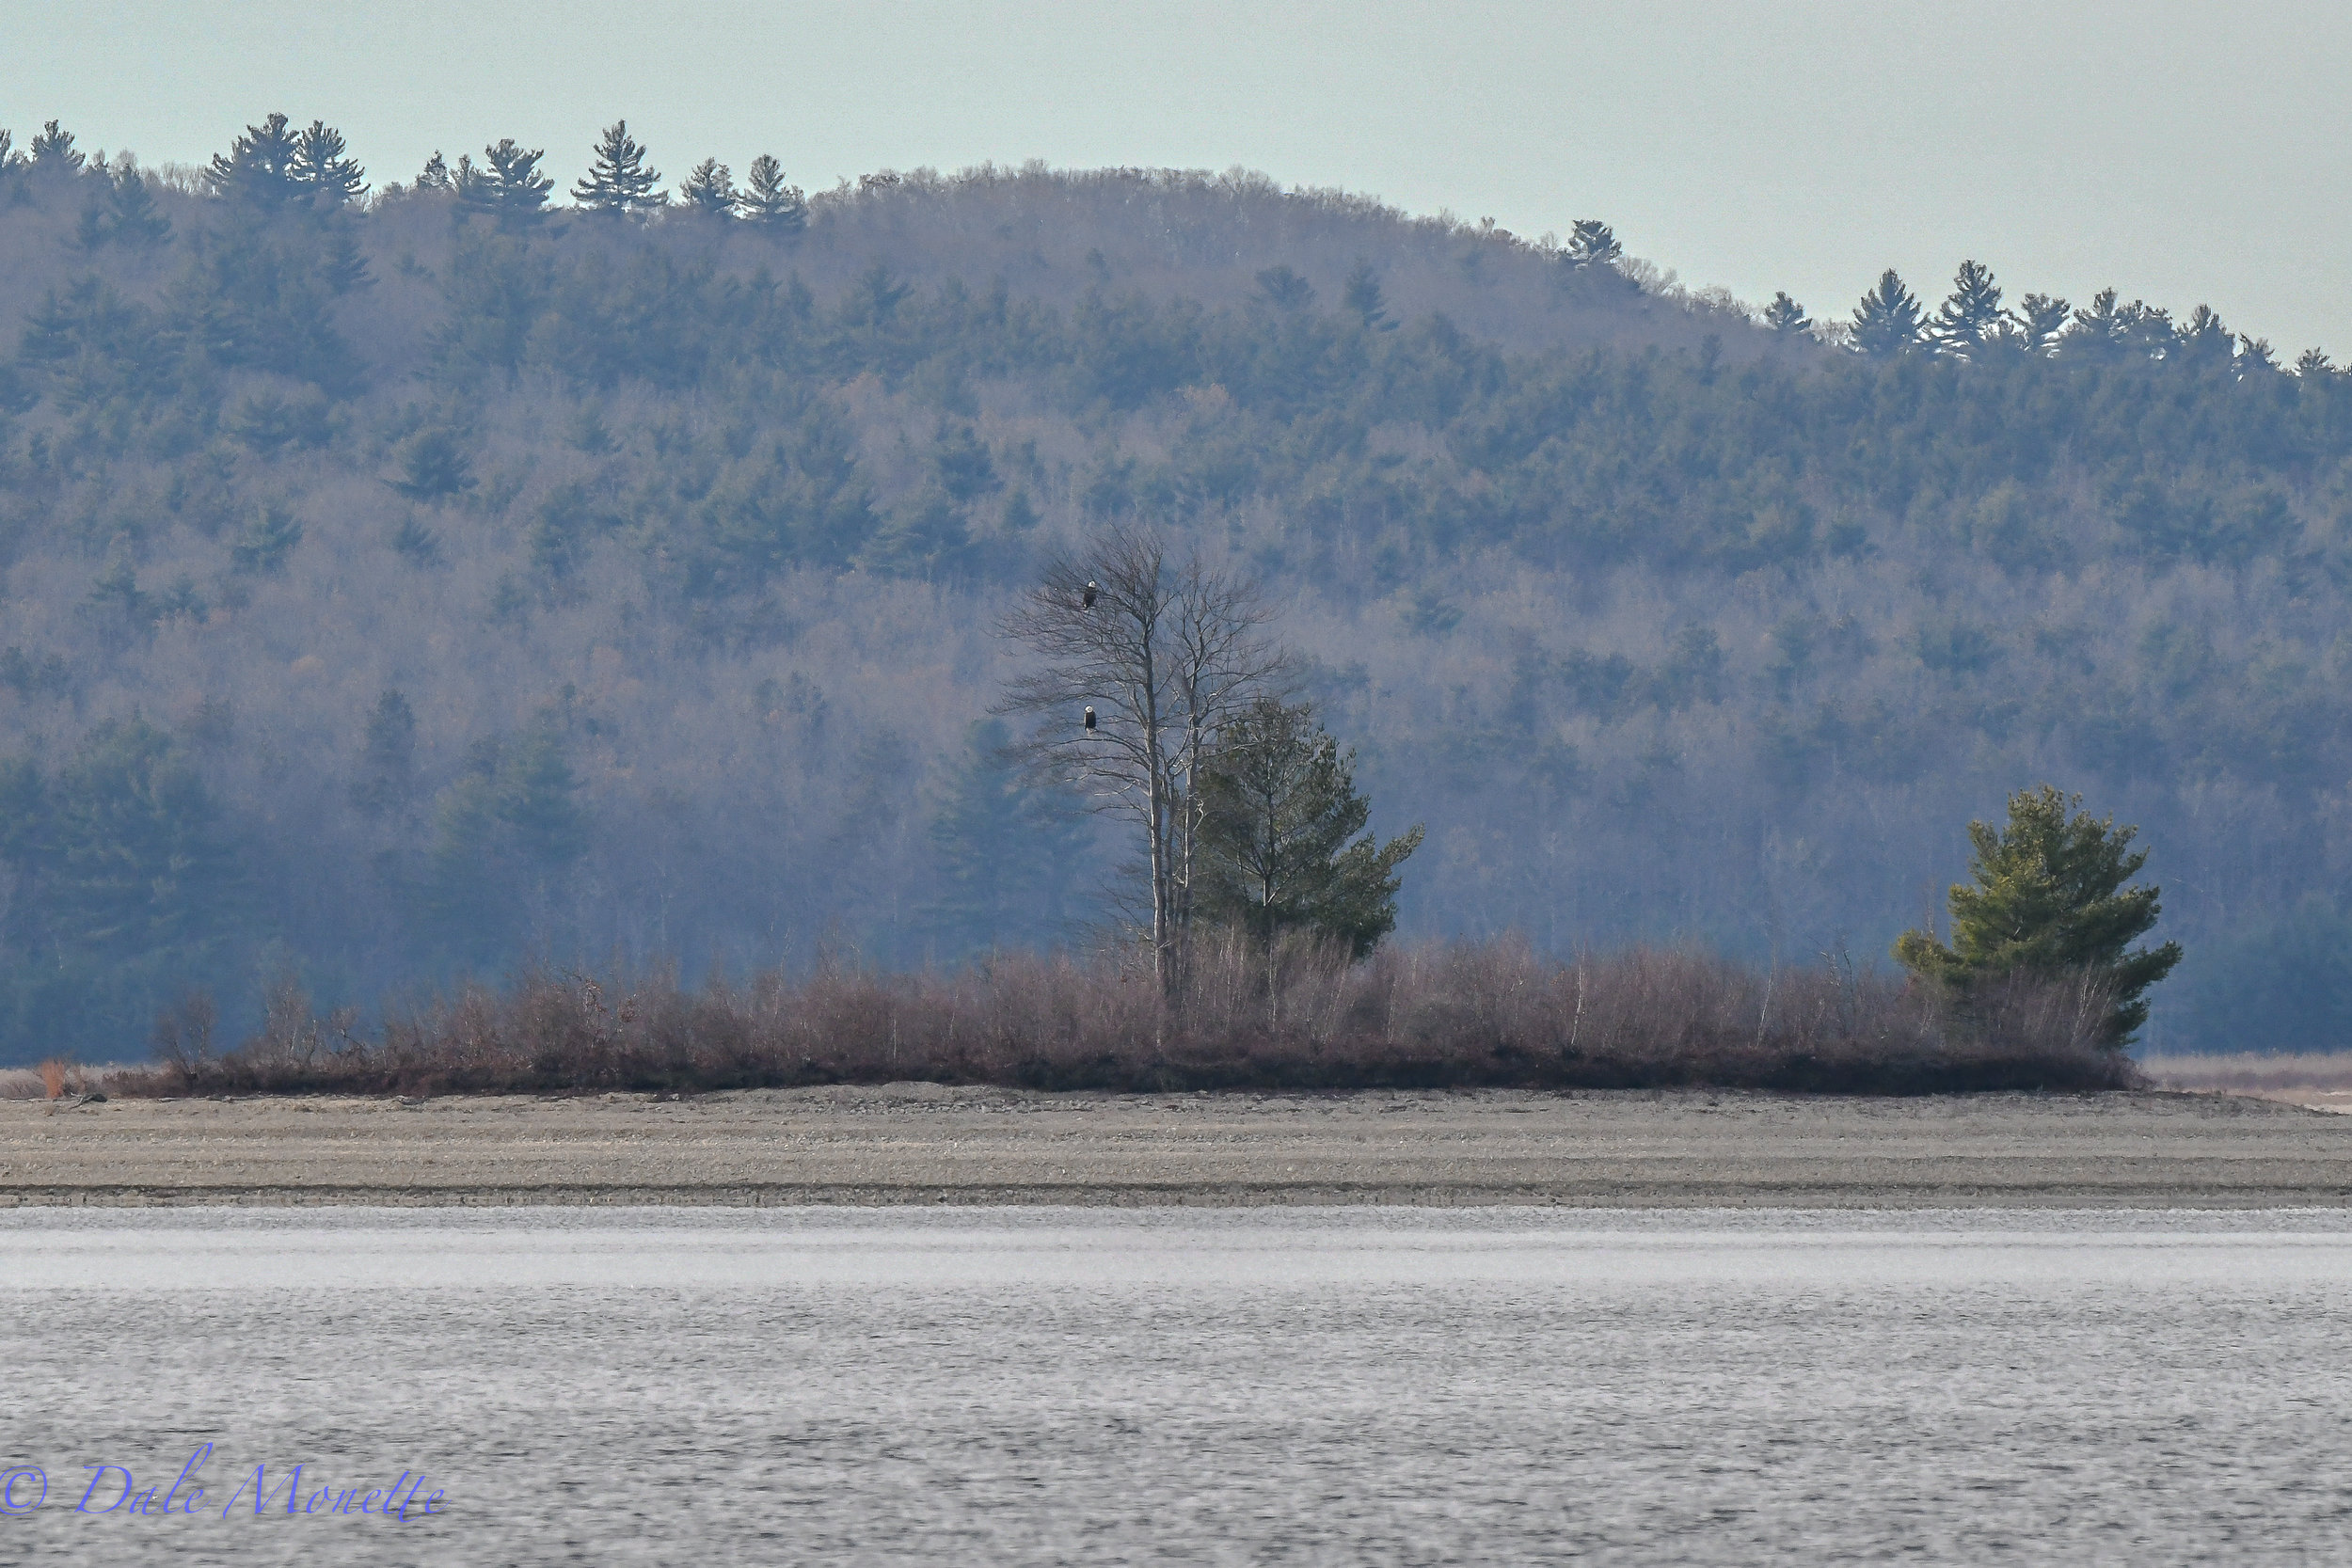 A mated pair of bald eagles sit together on Lone Tree Island in the Quabbin Reservoir, not far from their long time nest and ponder the coming winter and impending ice over that comes with it on the water.....